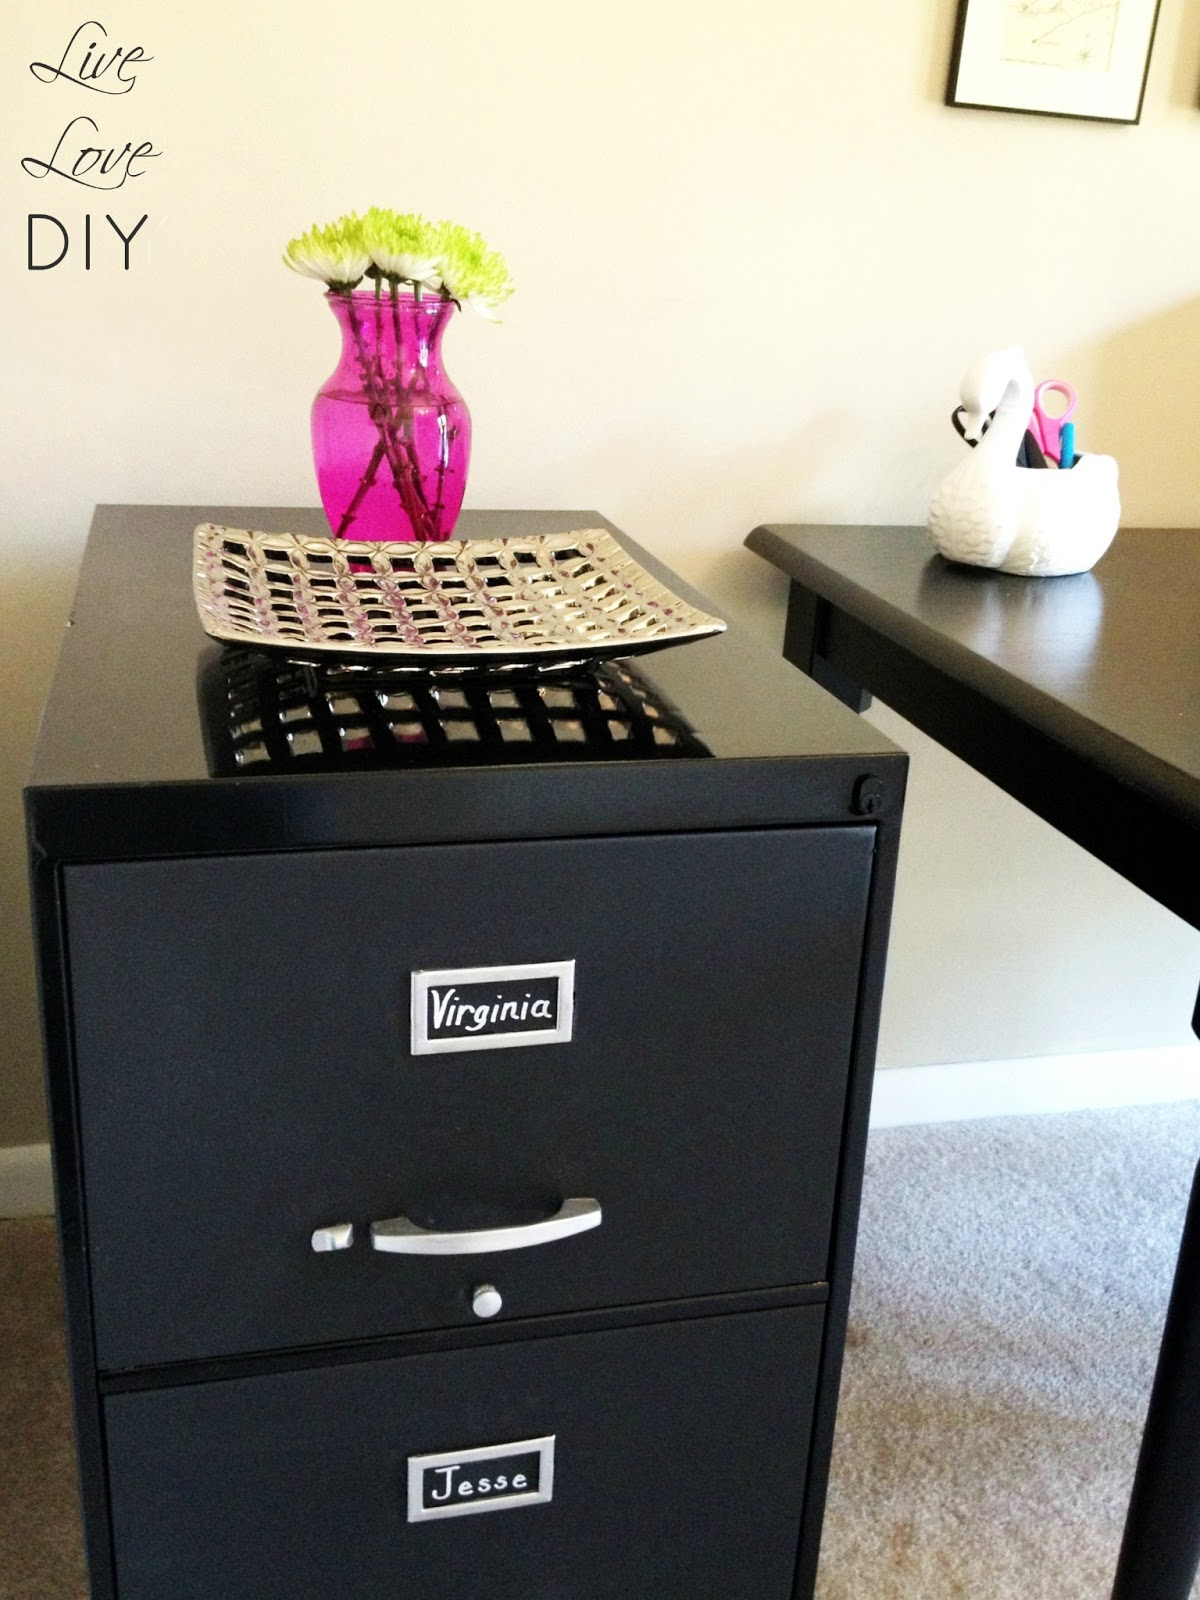 Chalkboard Paint File Cabinet Livelovediy I Accessorized Paul With A Cute Silver Tray And Some Fresh Flowers